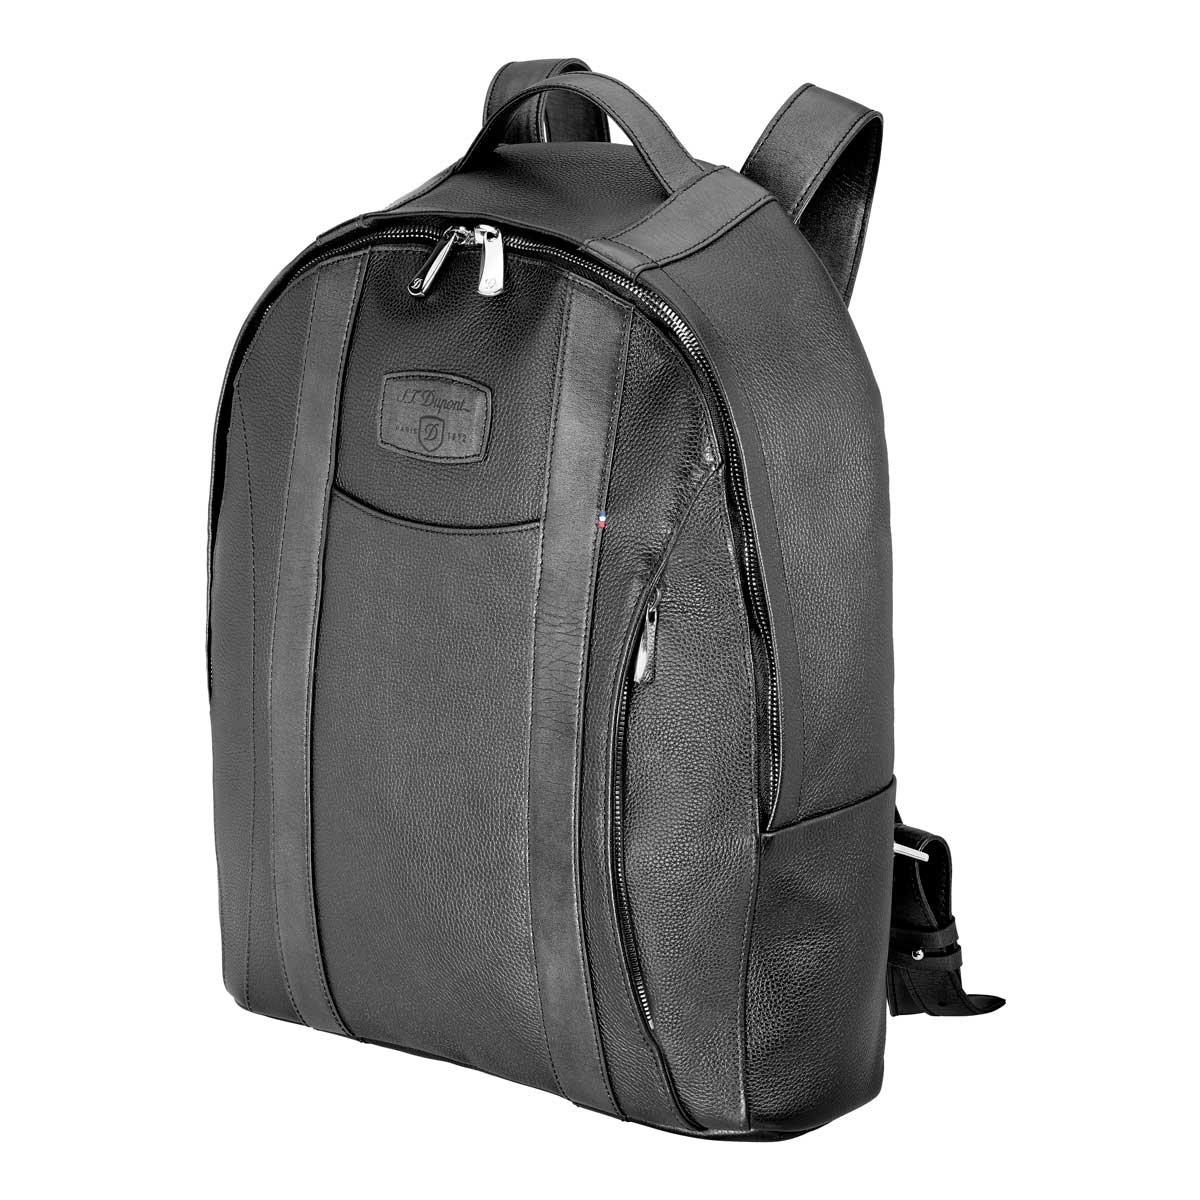 ST Dupont Soft Diamond Grained Black Leather Laptop Backpack